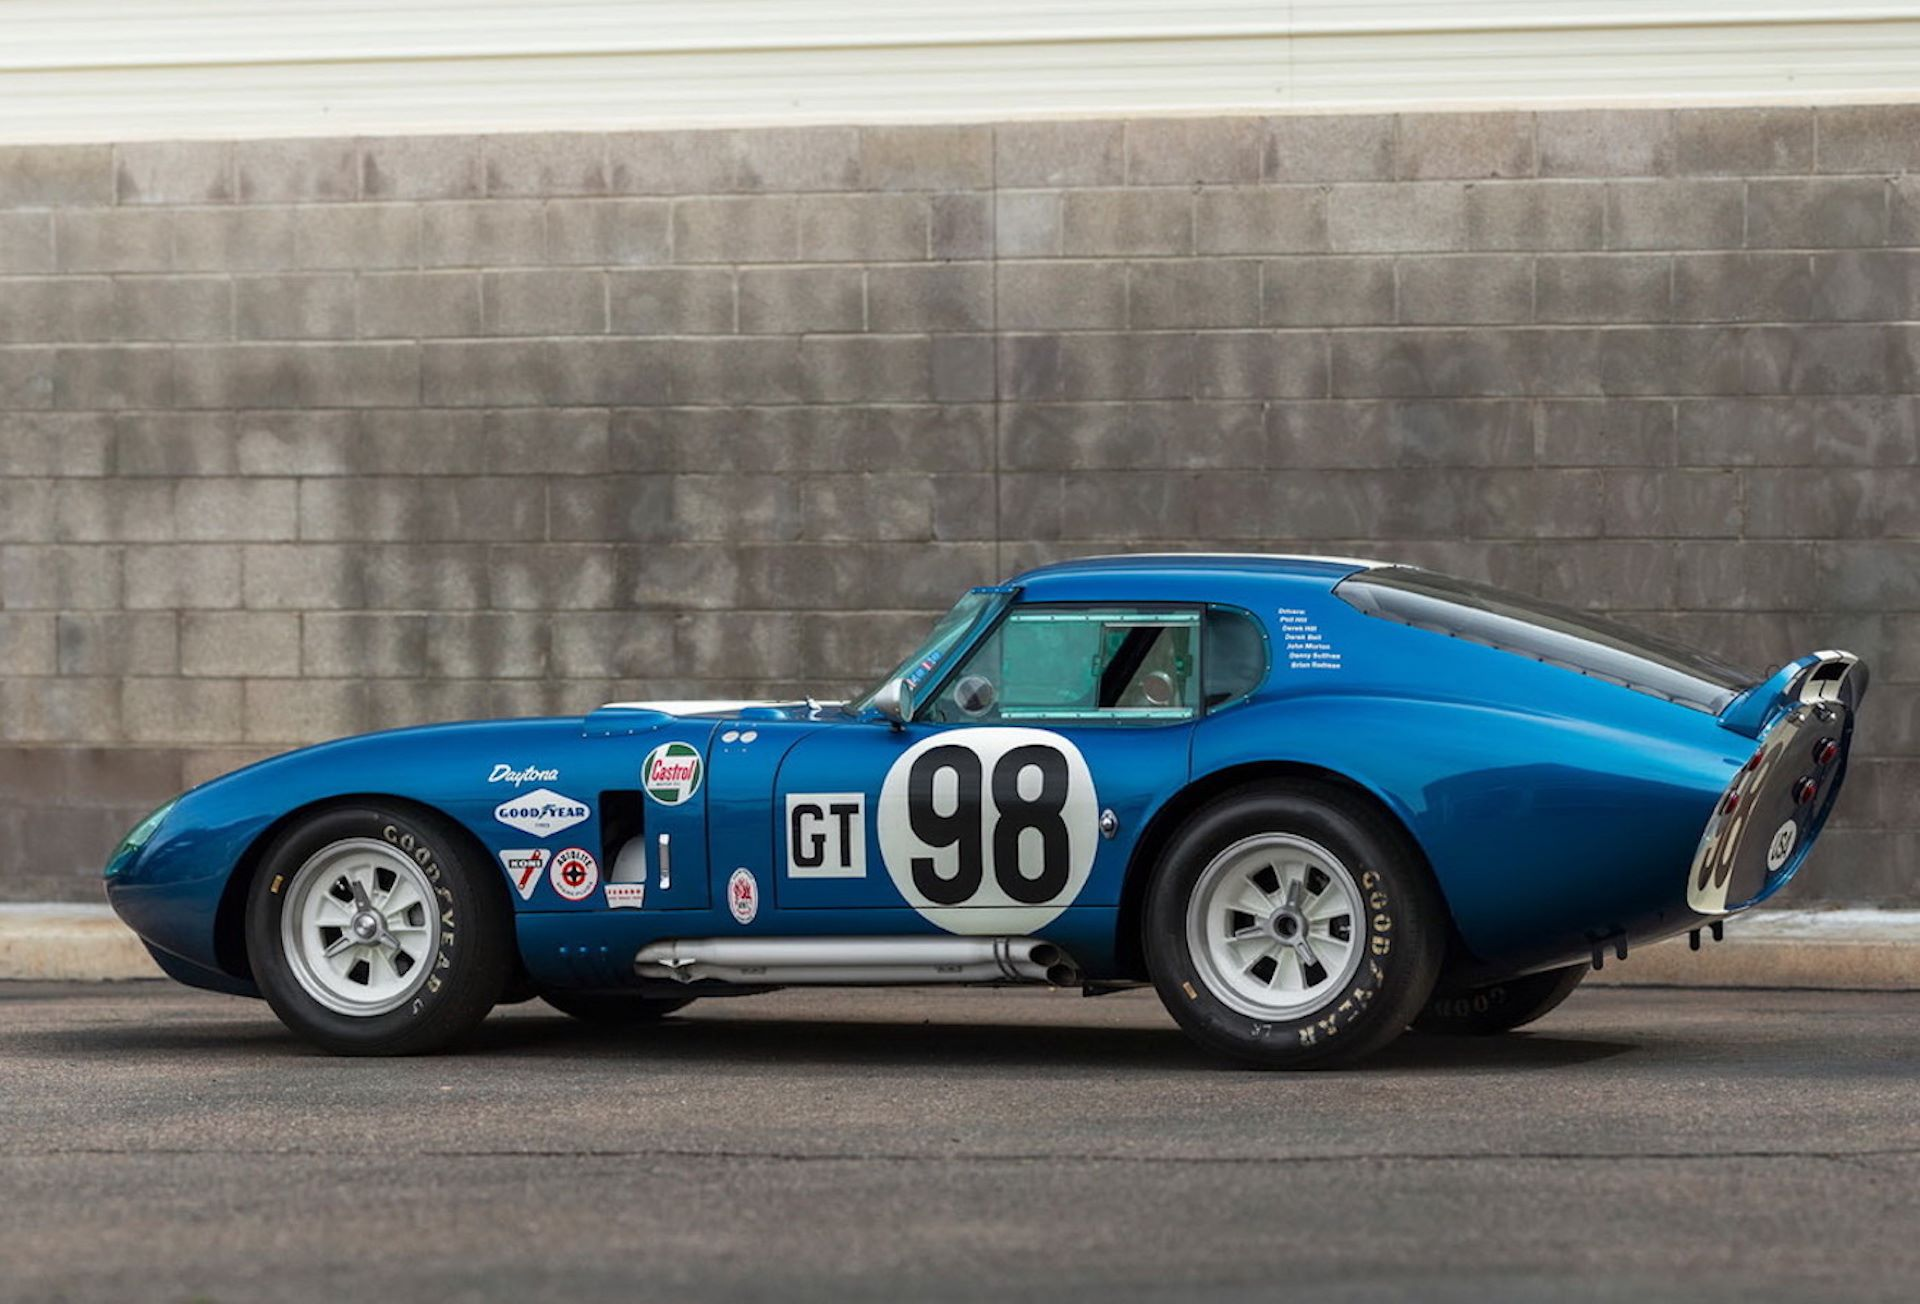 Daytona-Cobra-Carroll-Shelby-auction-AC-Cobra-22